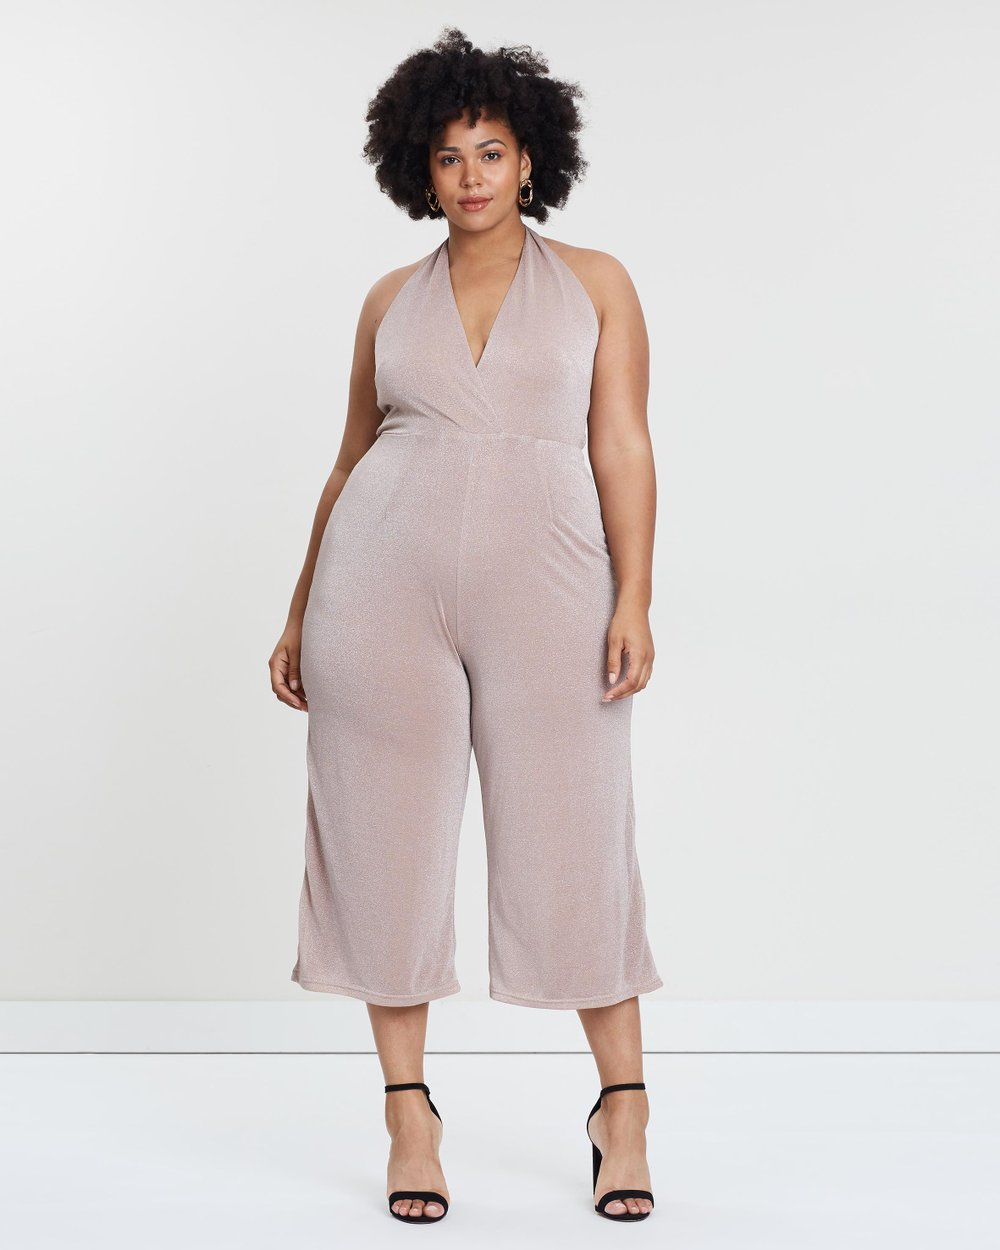 ICONIC EXCLUSIVE - Leilani Halter Neck Jumpsuit by Atmos Here Curvy Online   915681a71